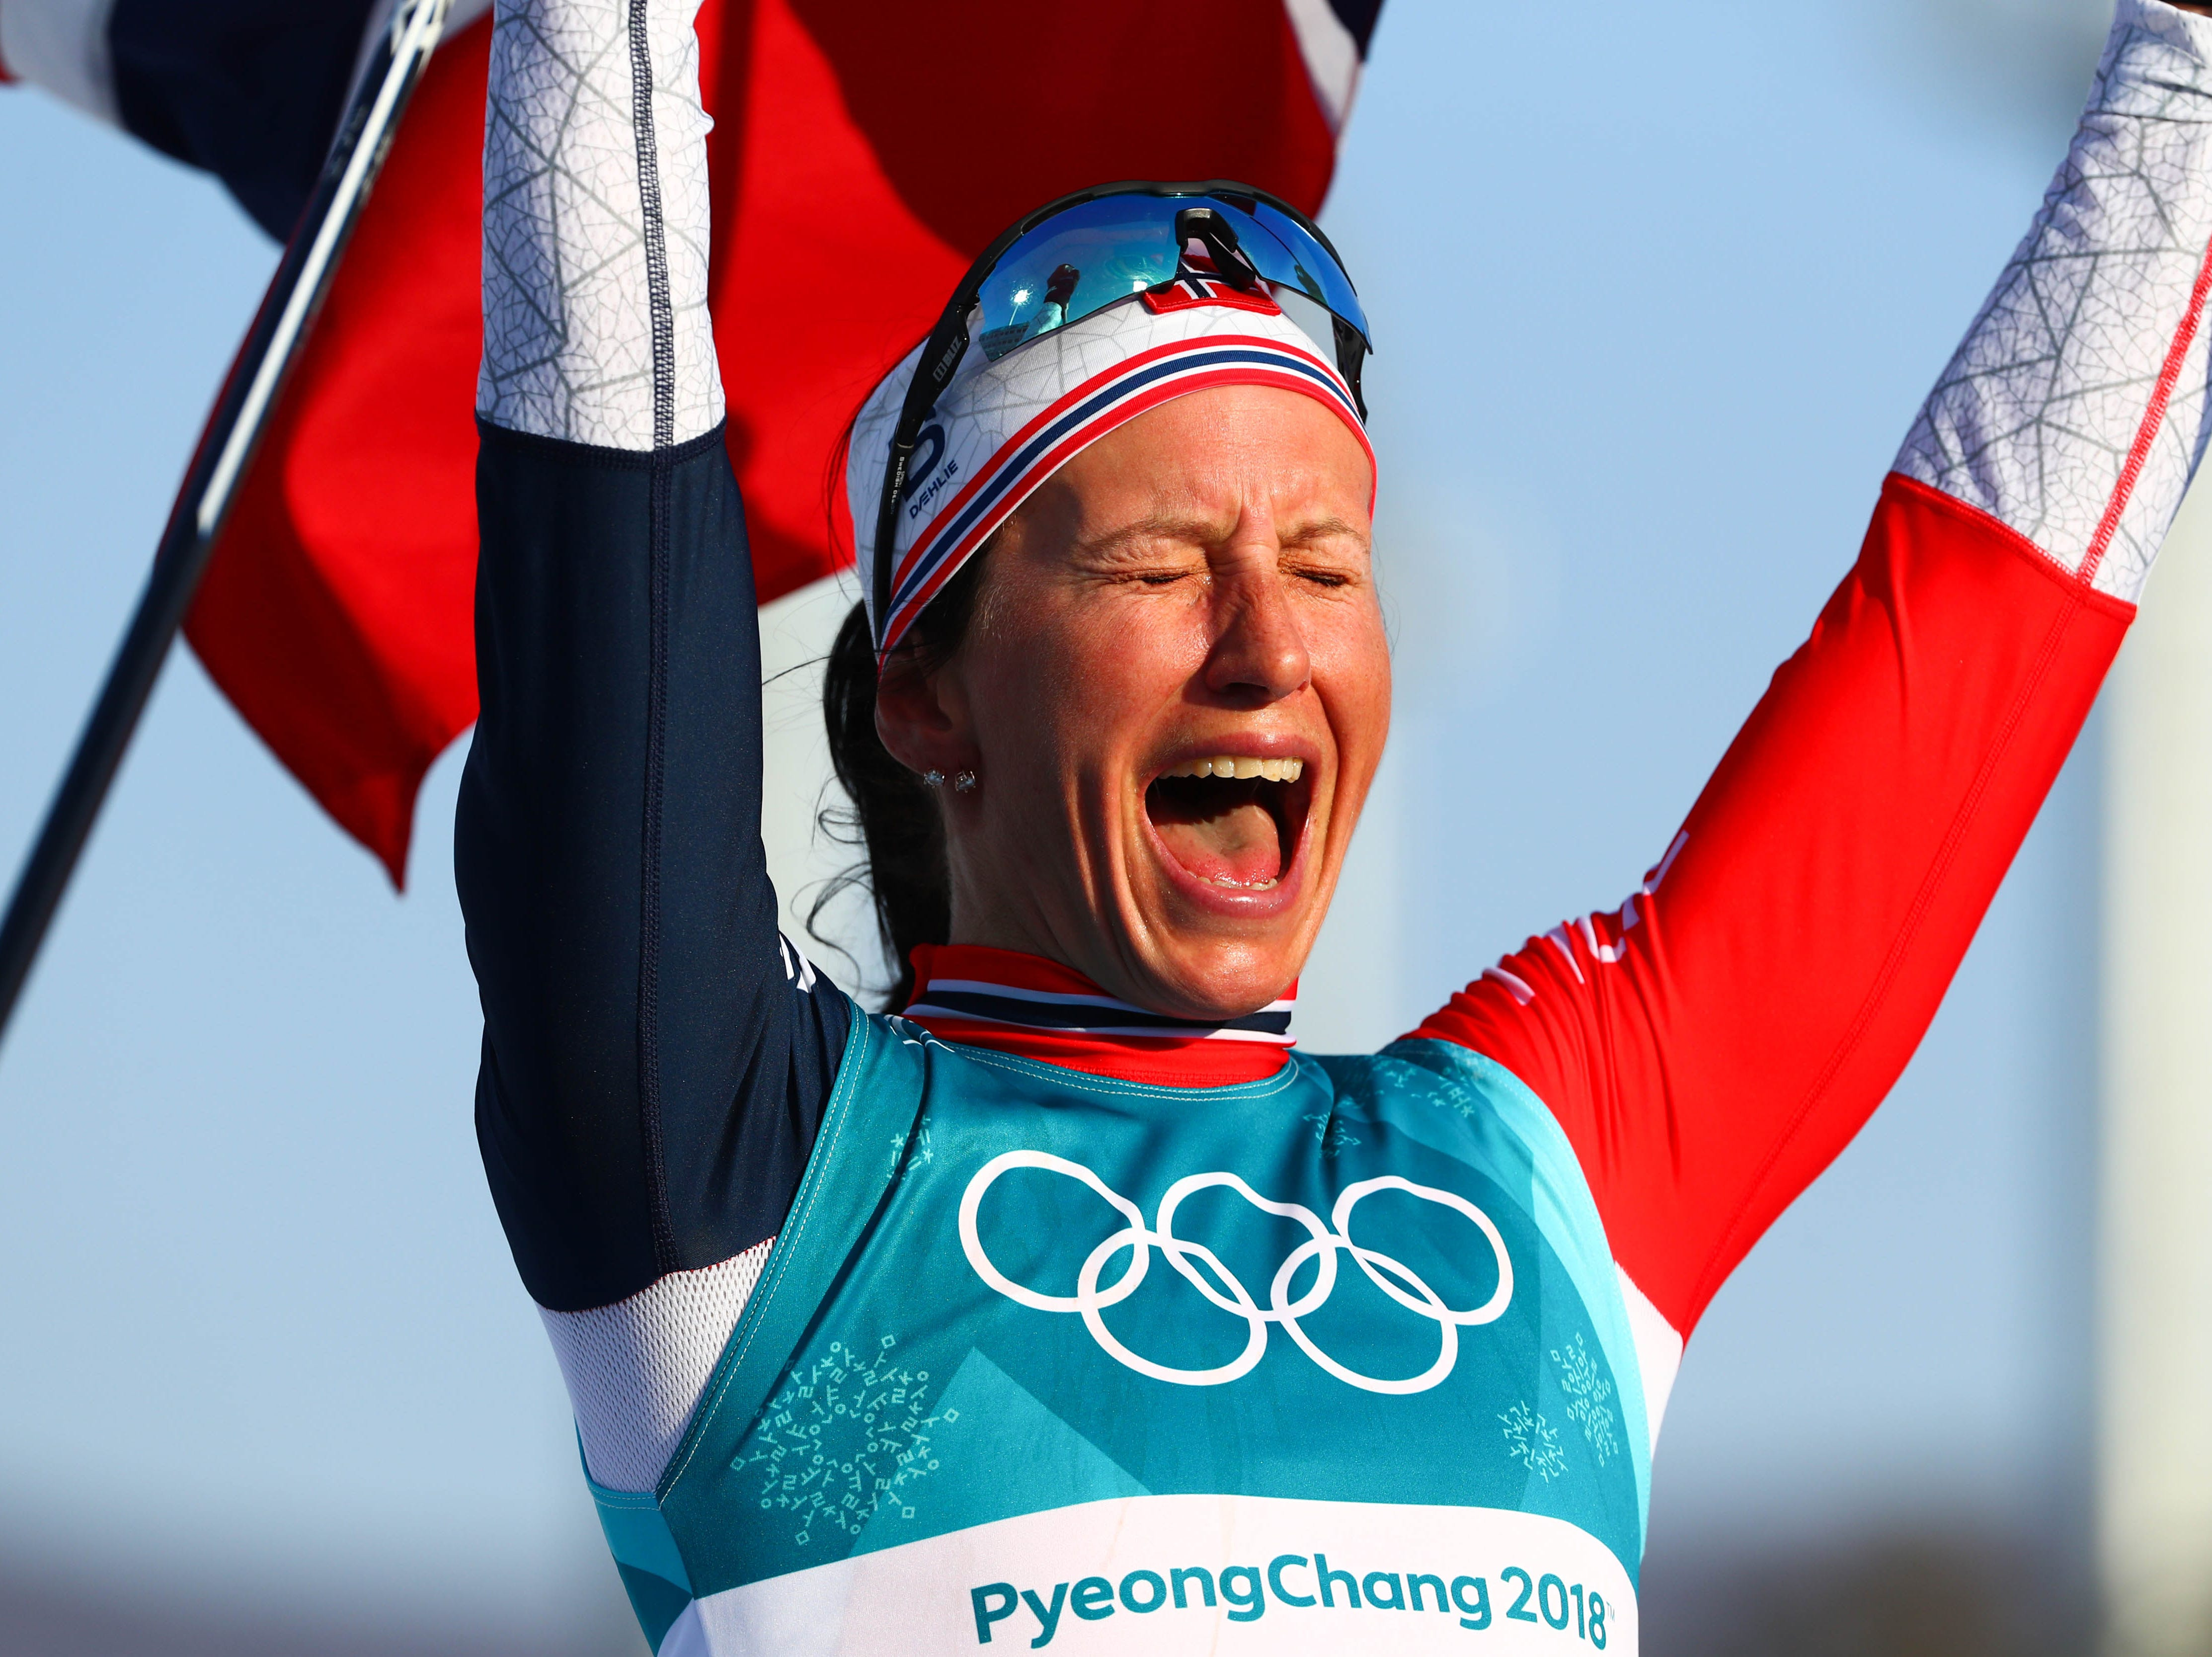 Feb. 25: Marit Bjoergen (NOR) reacts at the finish line in the women's 30km classic style cross country event during the Pyeongchang Winter Games.